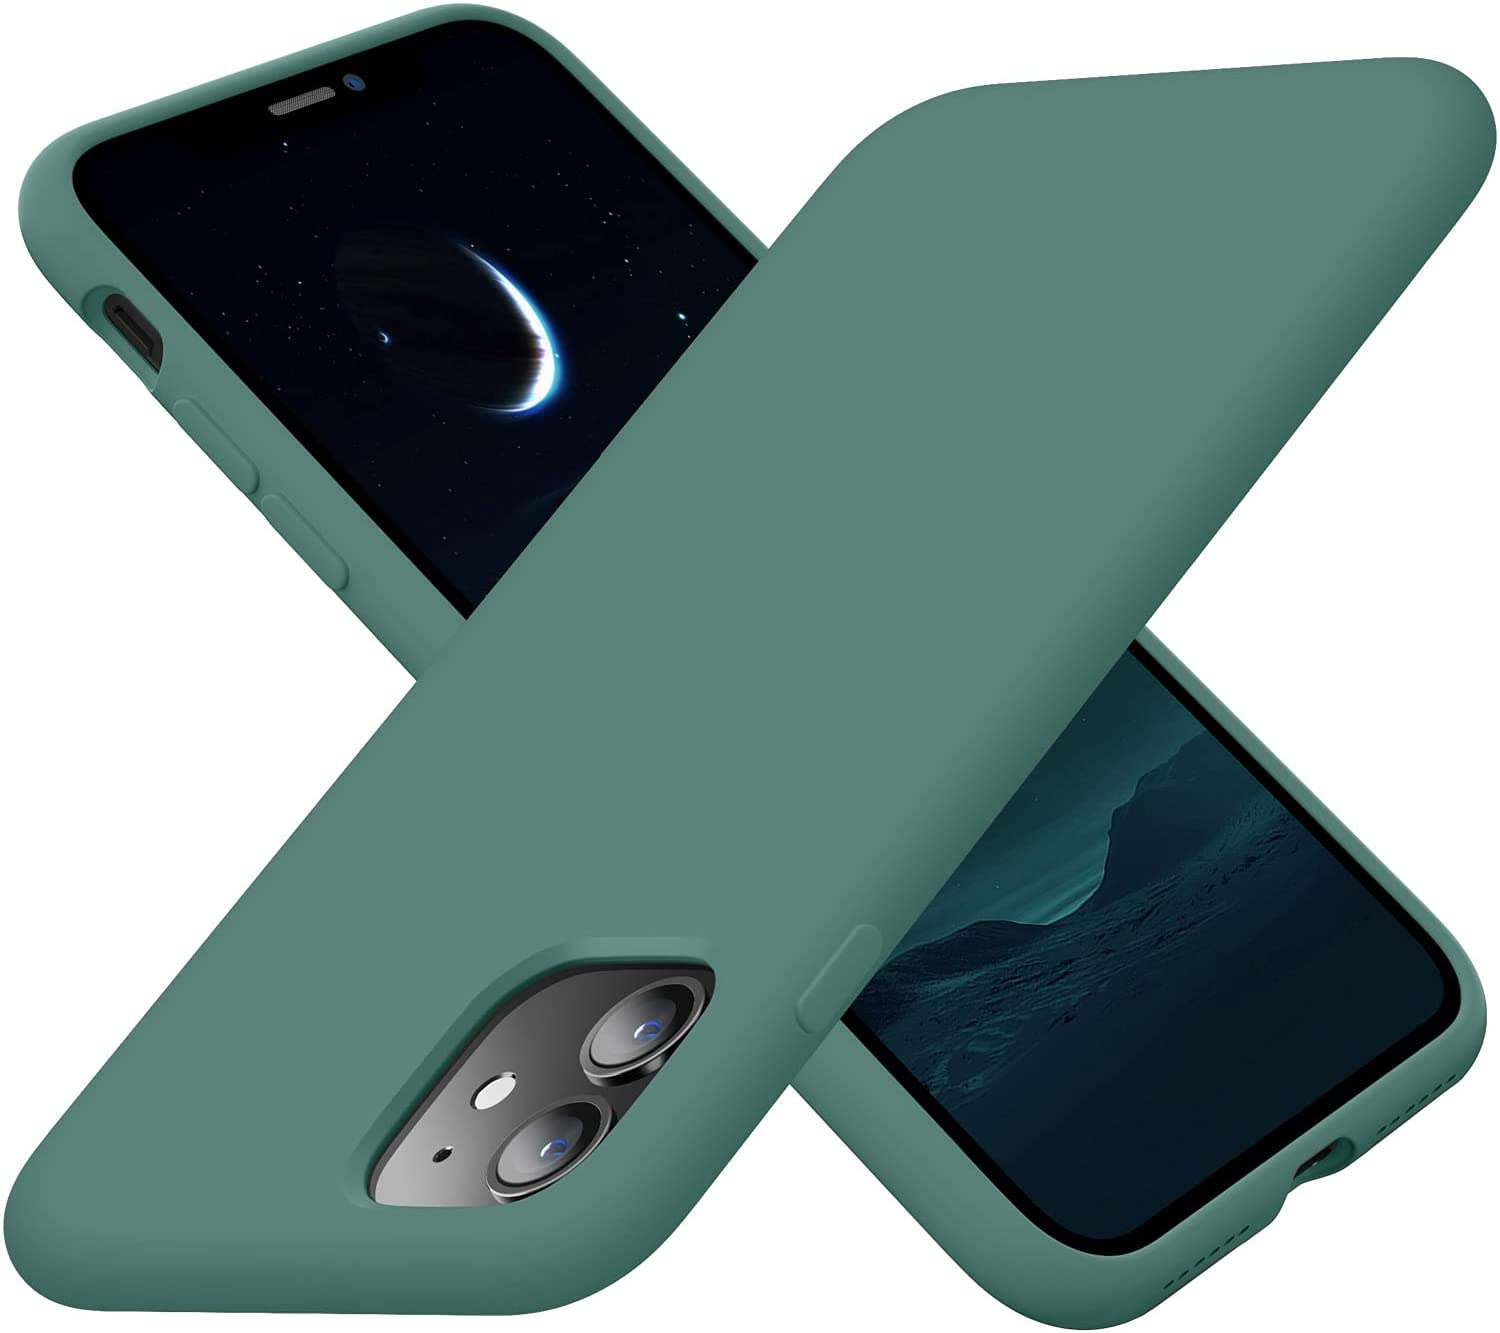 Cordking iPhone 11 Case, Silicone Ultra Slim Shockproof Phone Case with [Soft Anti-Scratch Microfiber Lining], 6.1 inch, Midnight Green